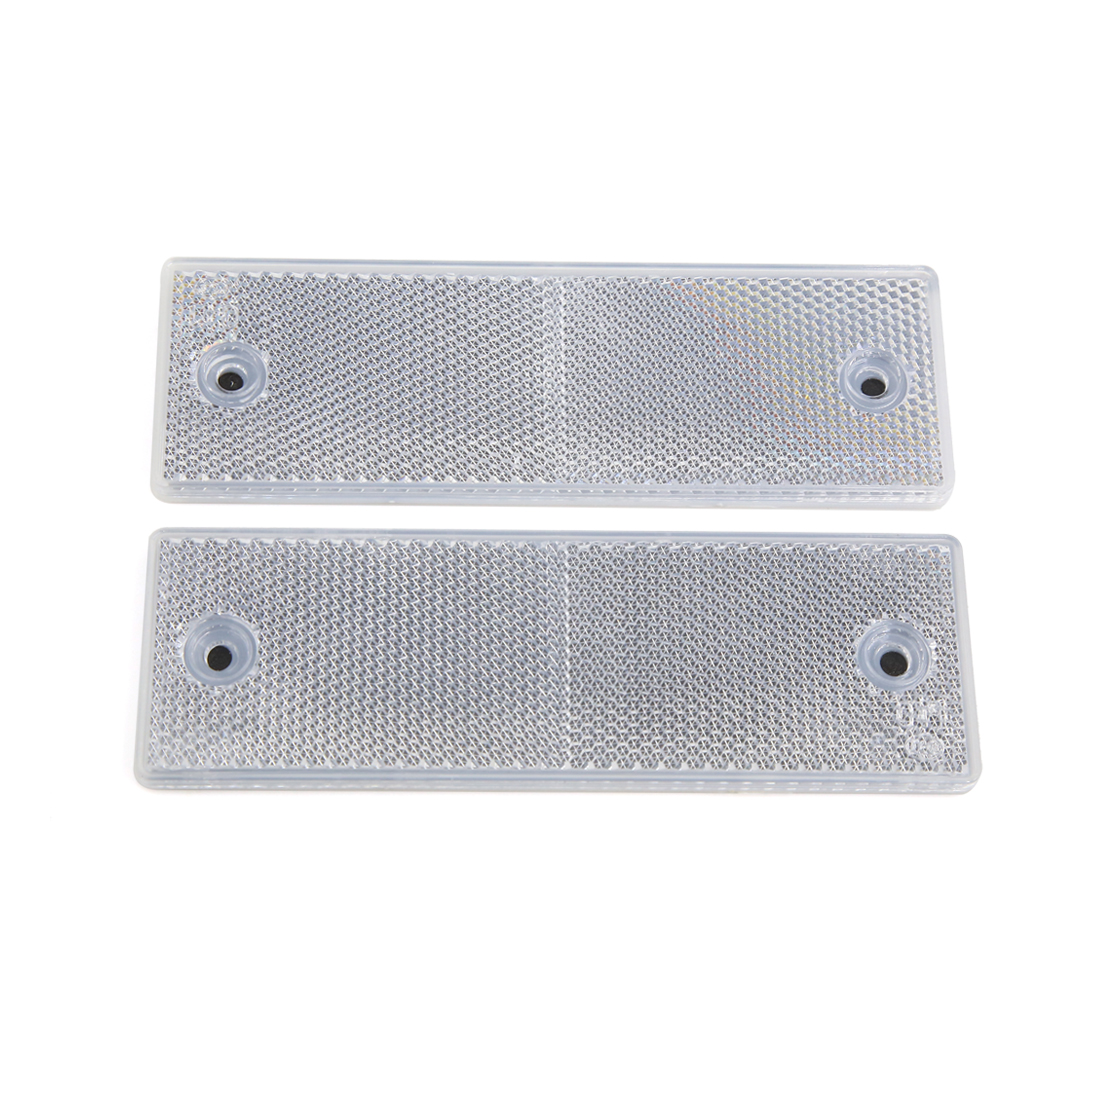 2 Pcs Rectangle Light Reflector Tail Brake Stop Marker White for Car Auto